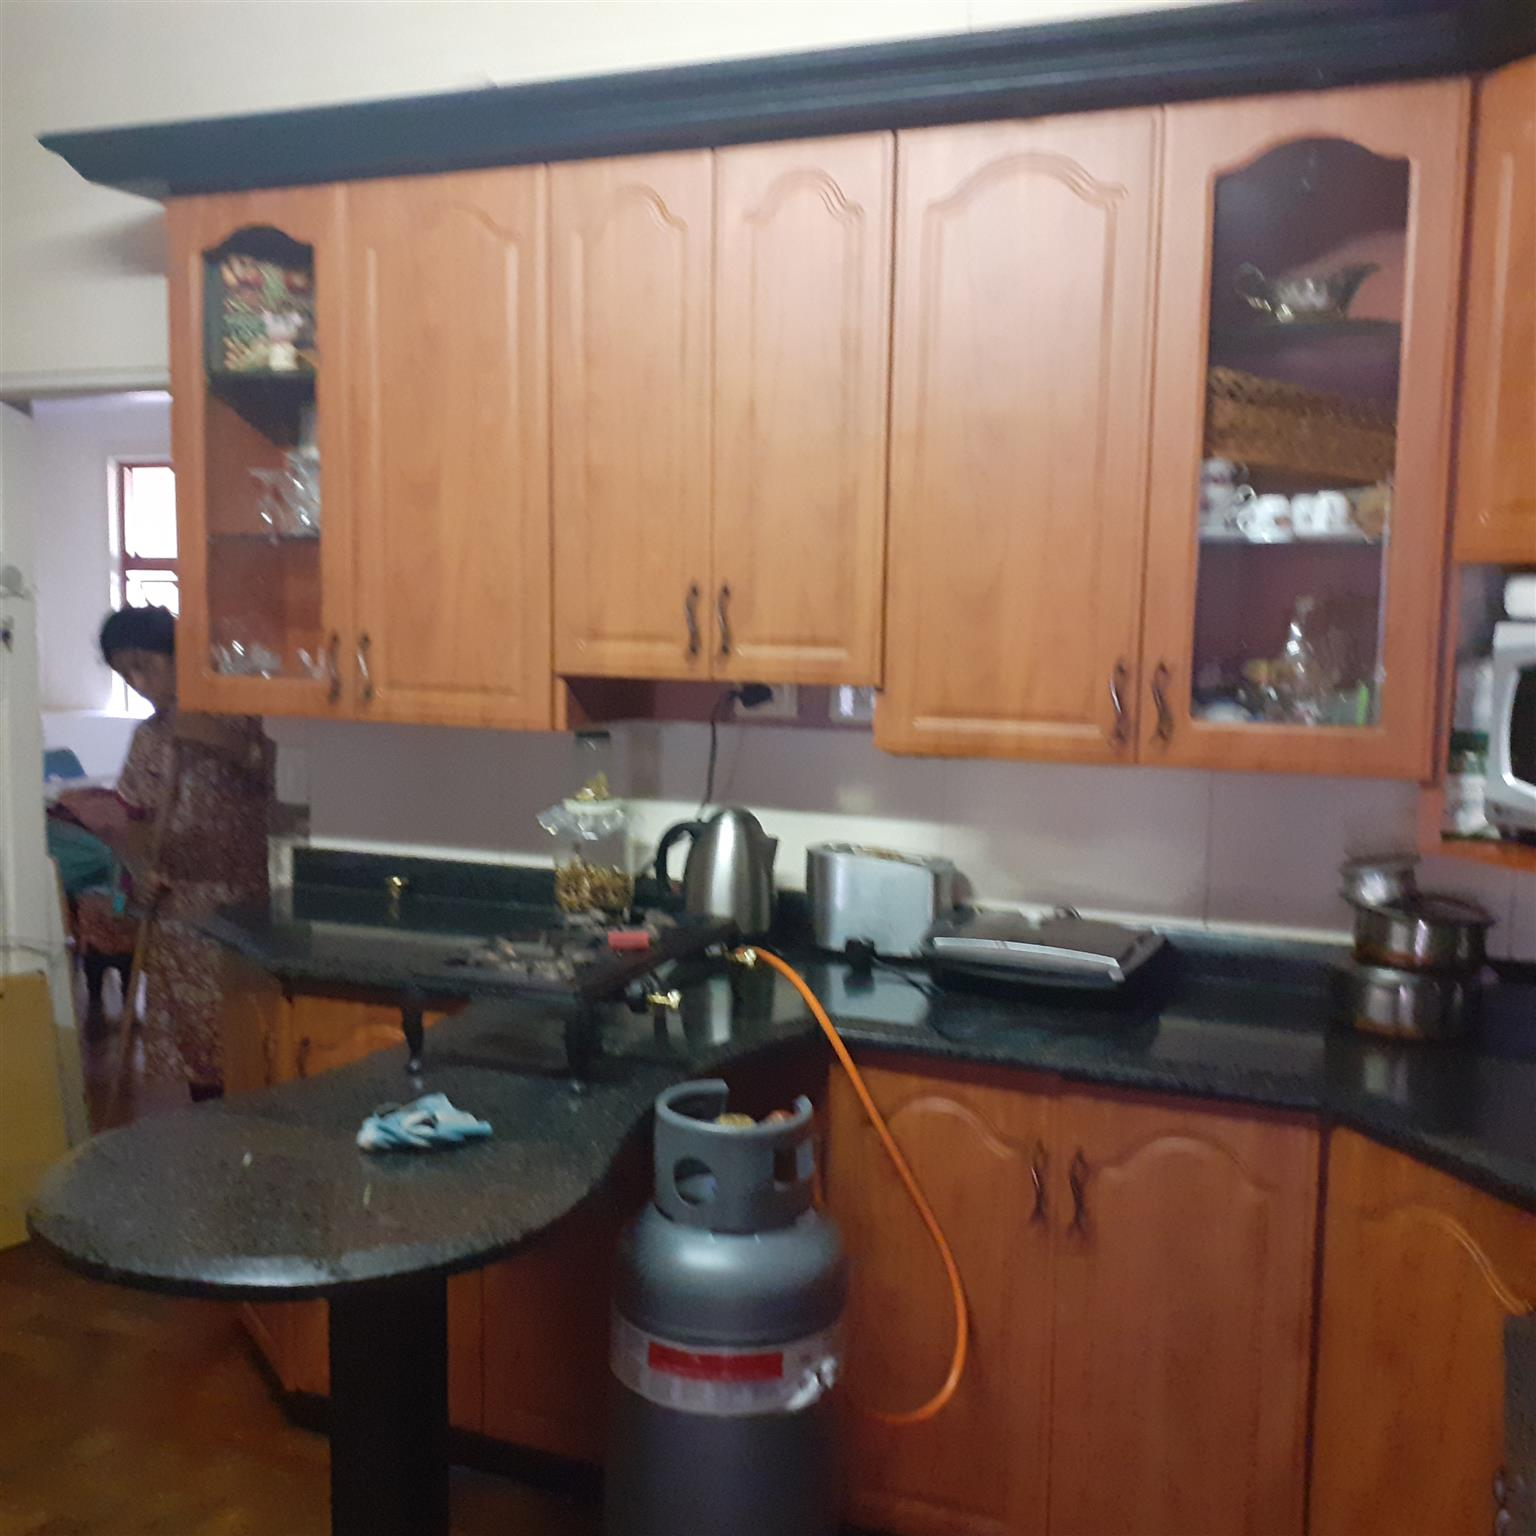 Good condition kitchen units with stove and, microwave and prep bowl